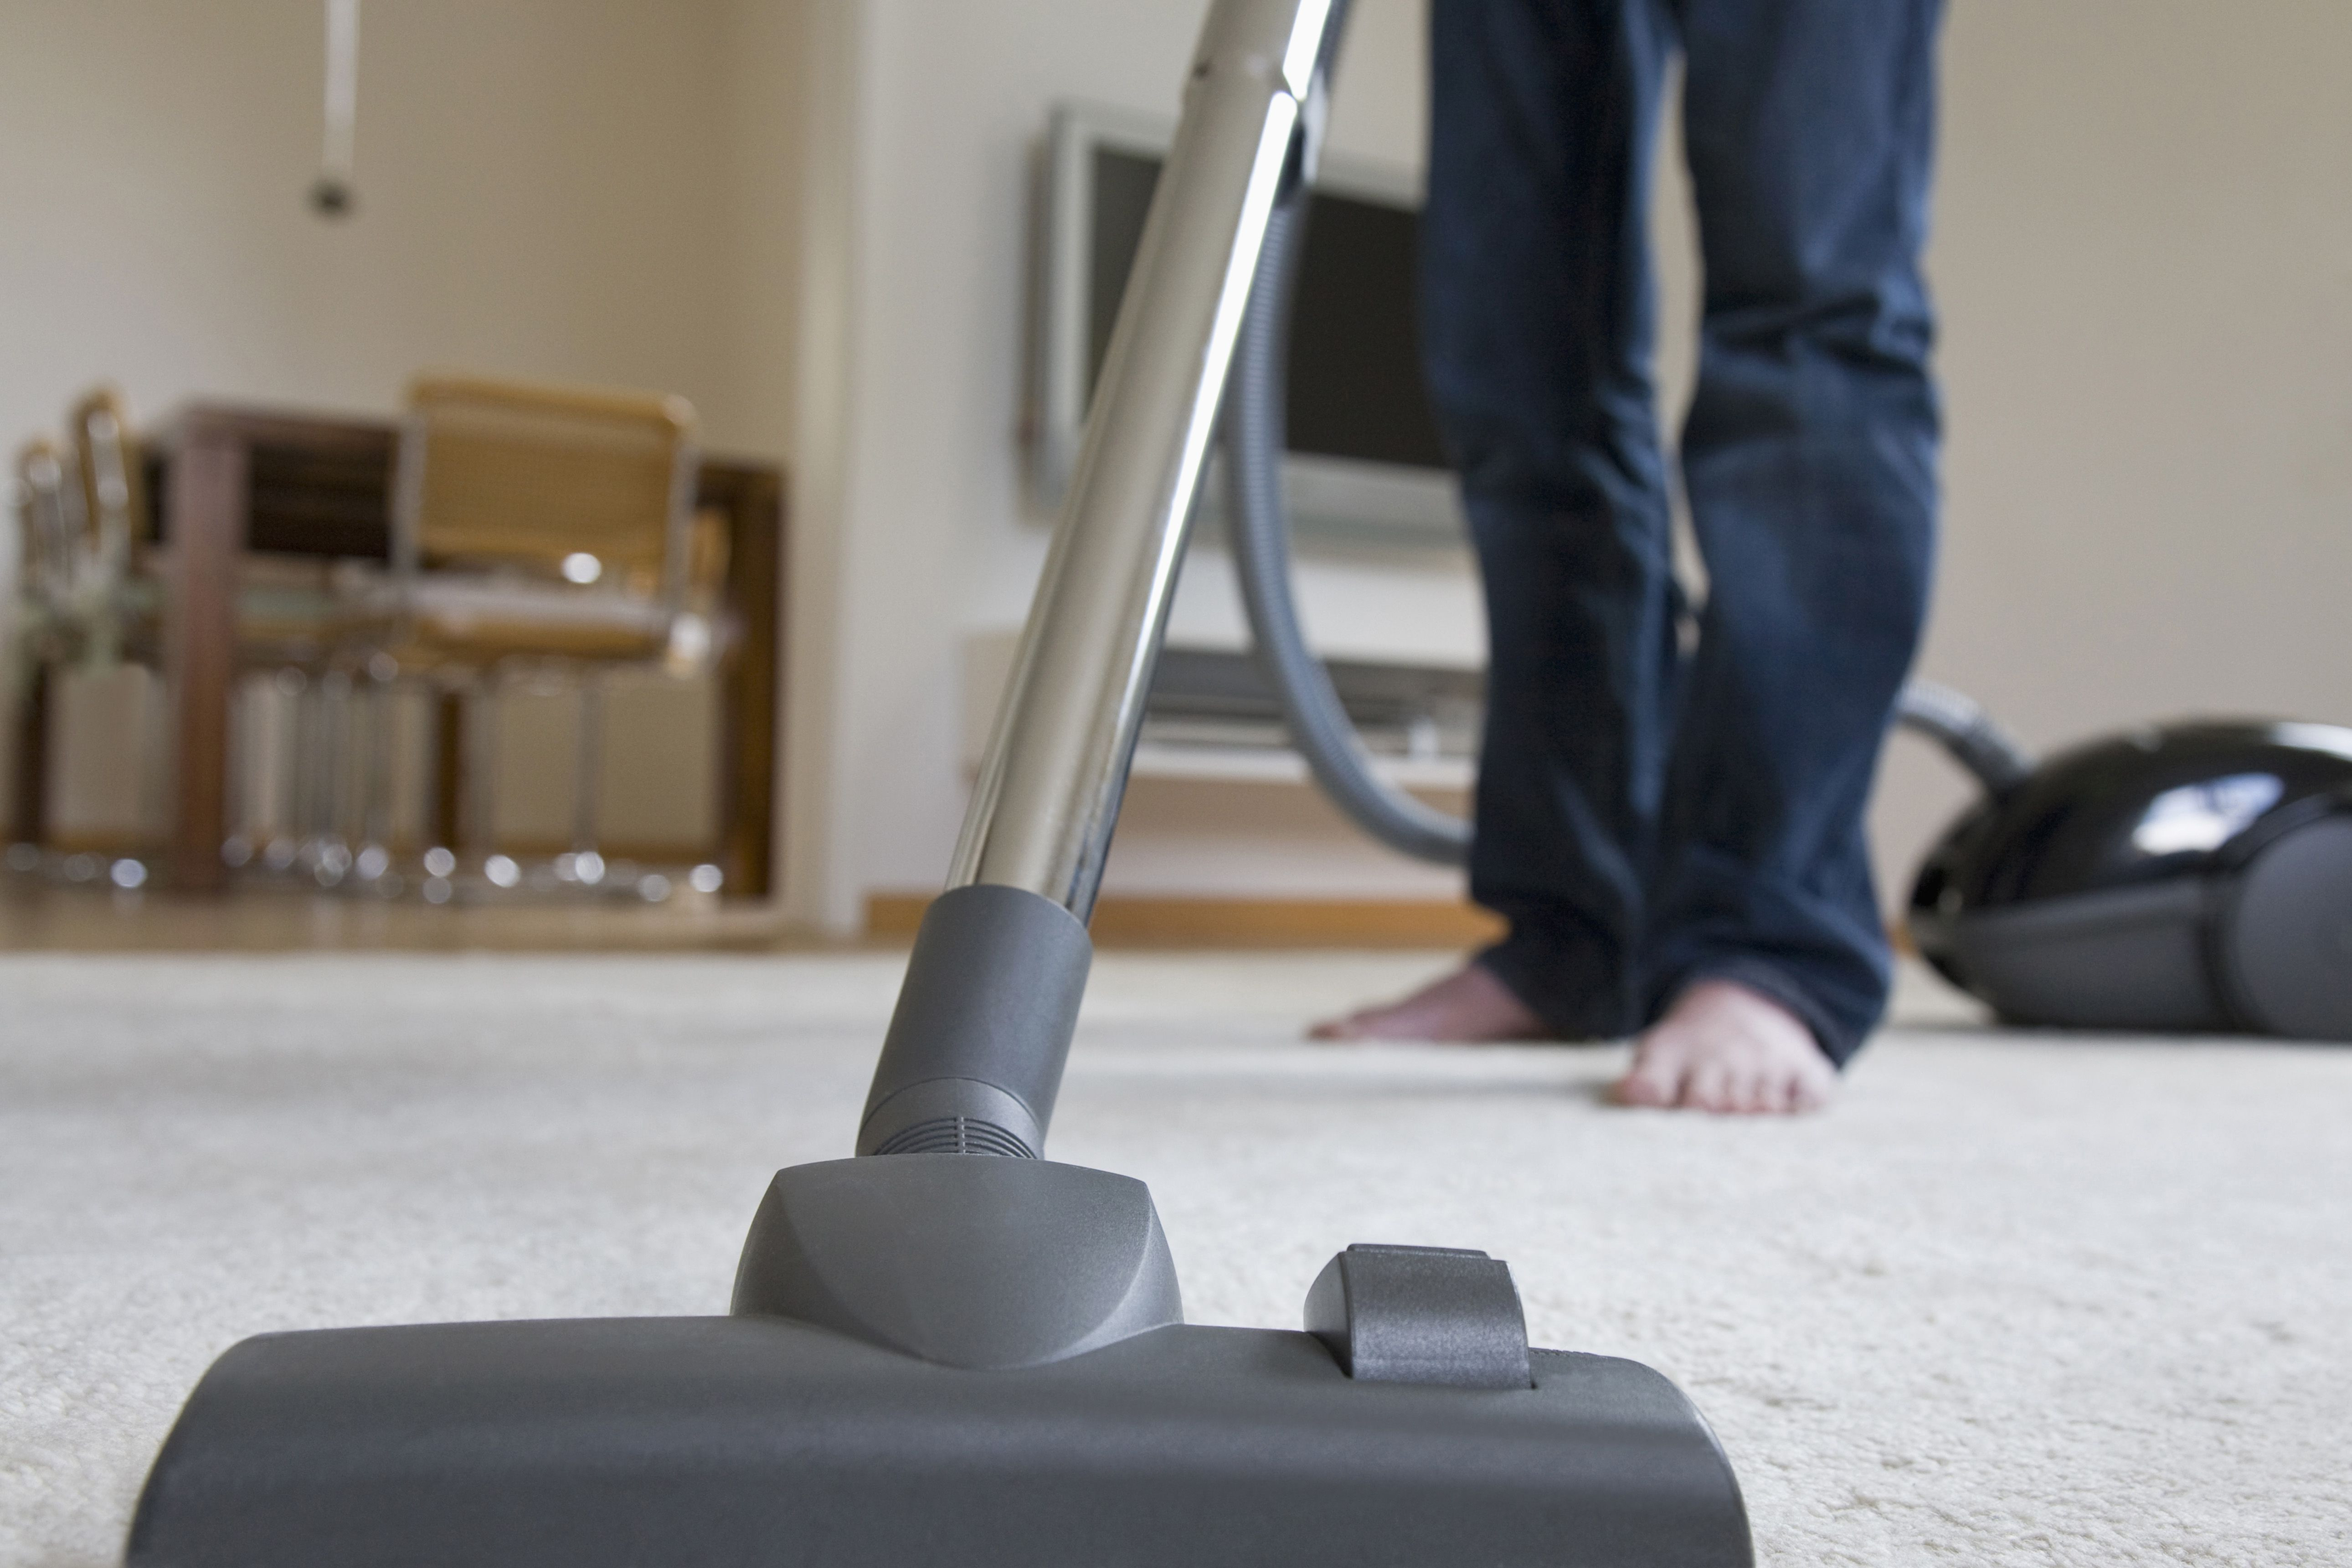 kirby hardwood floor care kit of you should not use a regular vacuum to clean ash for germany baden wurttemberg stuttgart man vacuuming carpet low section 166275697 59dd3ebe22fa3a0011e54df7